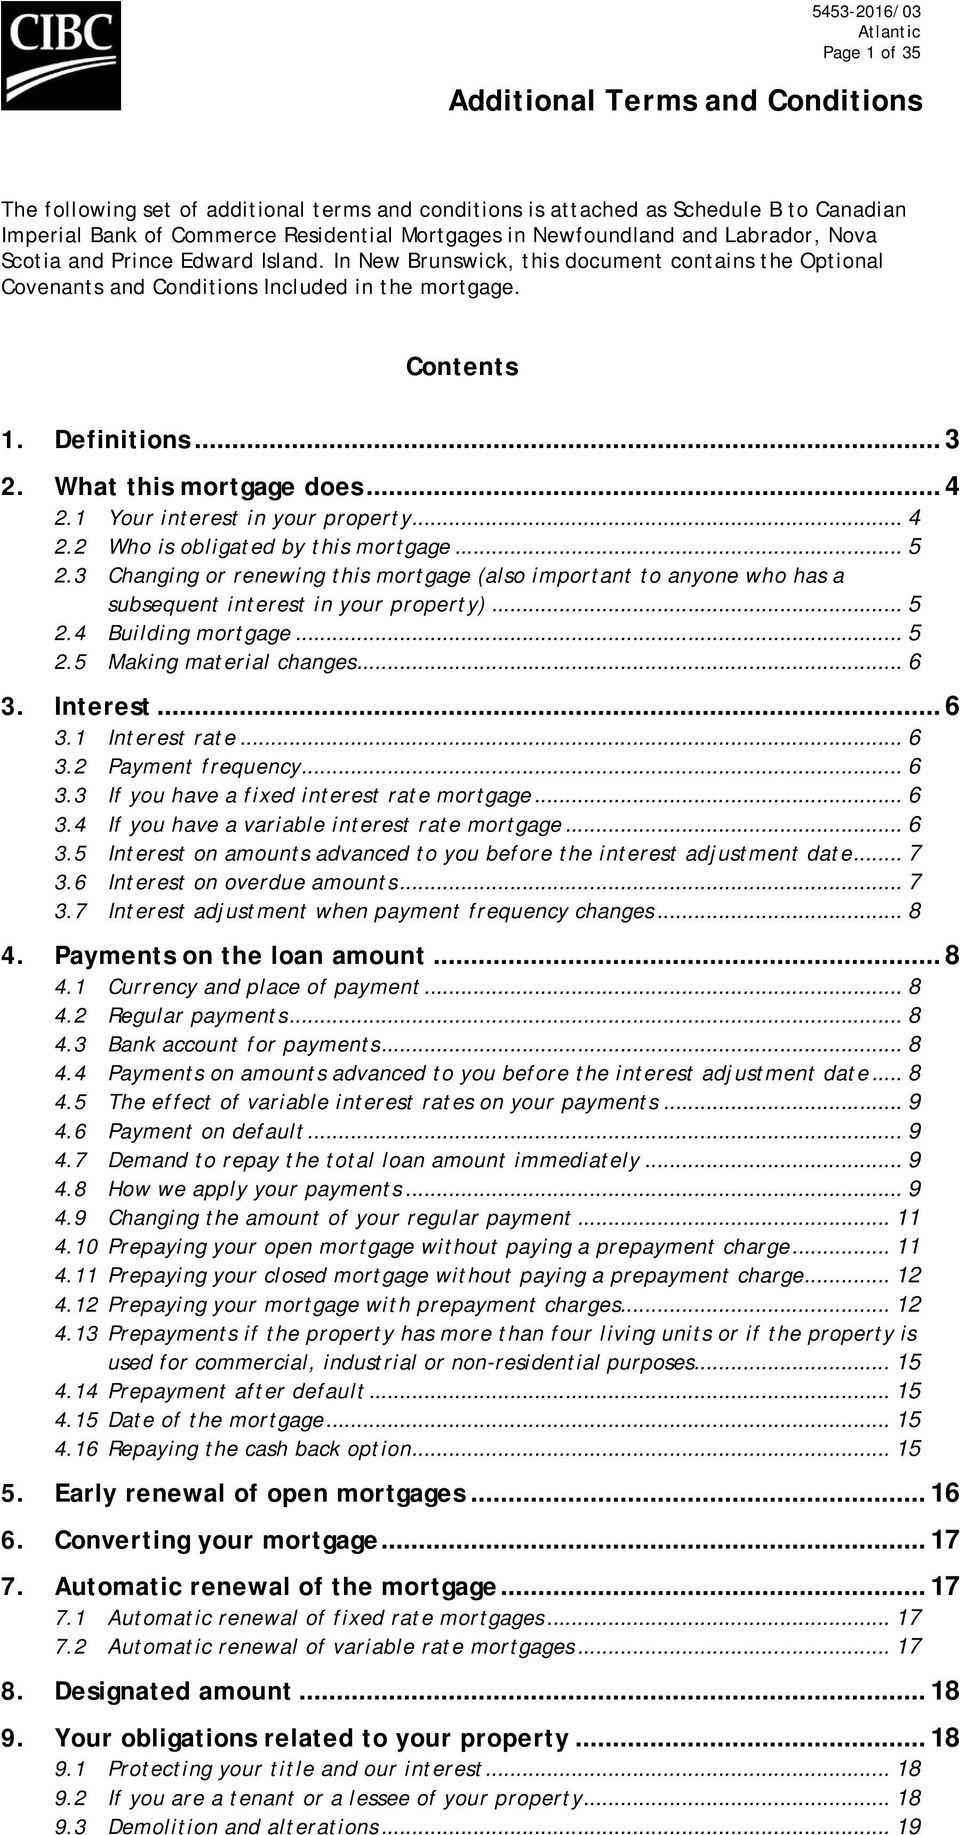 What this mortgage does... 4 2.1 Your interest in your property... 4 2.2 Who is obligated by this mortgage... 5 2.